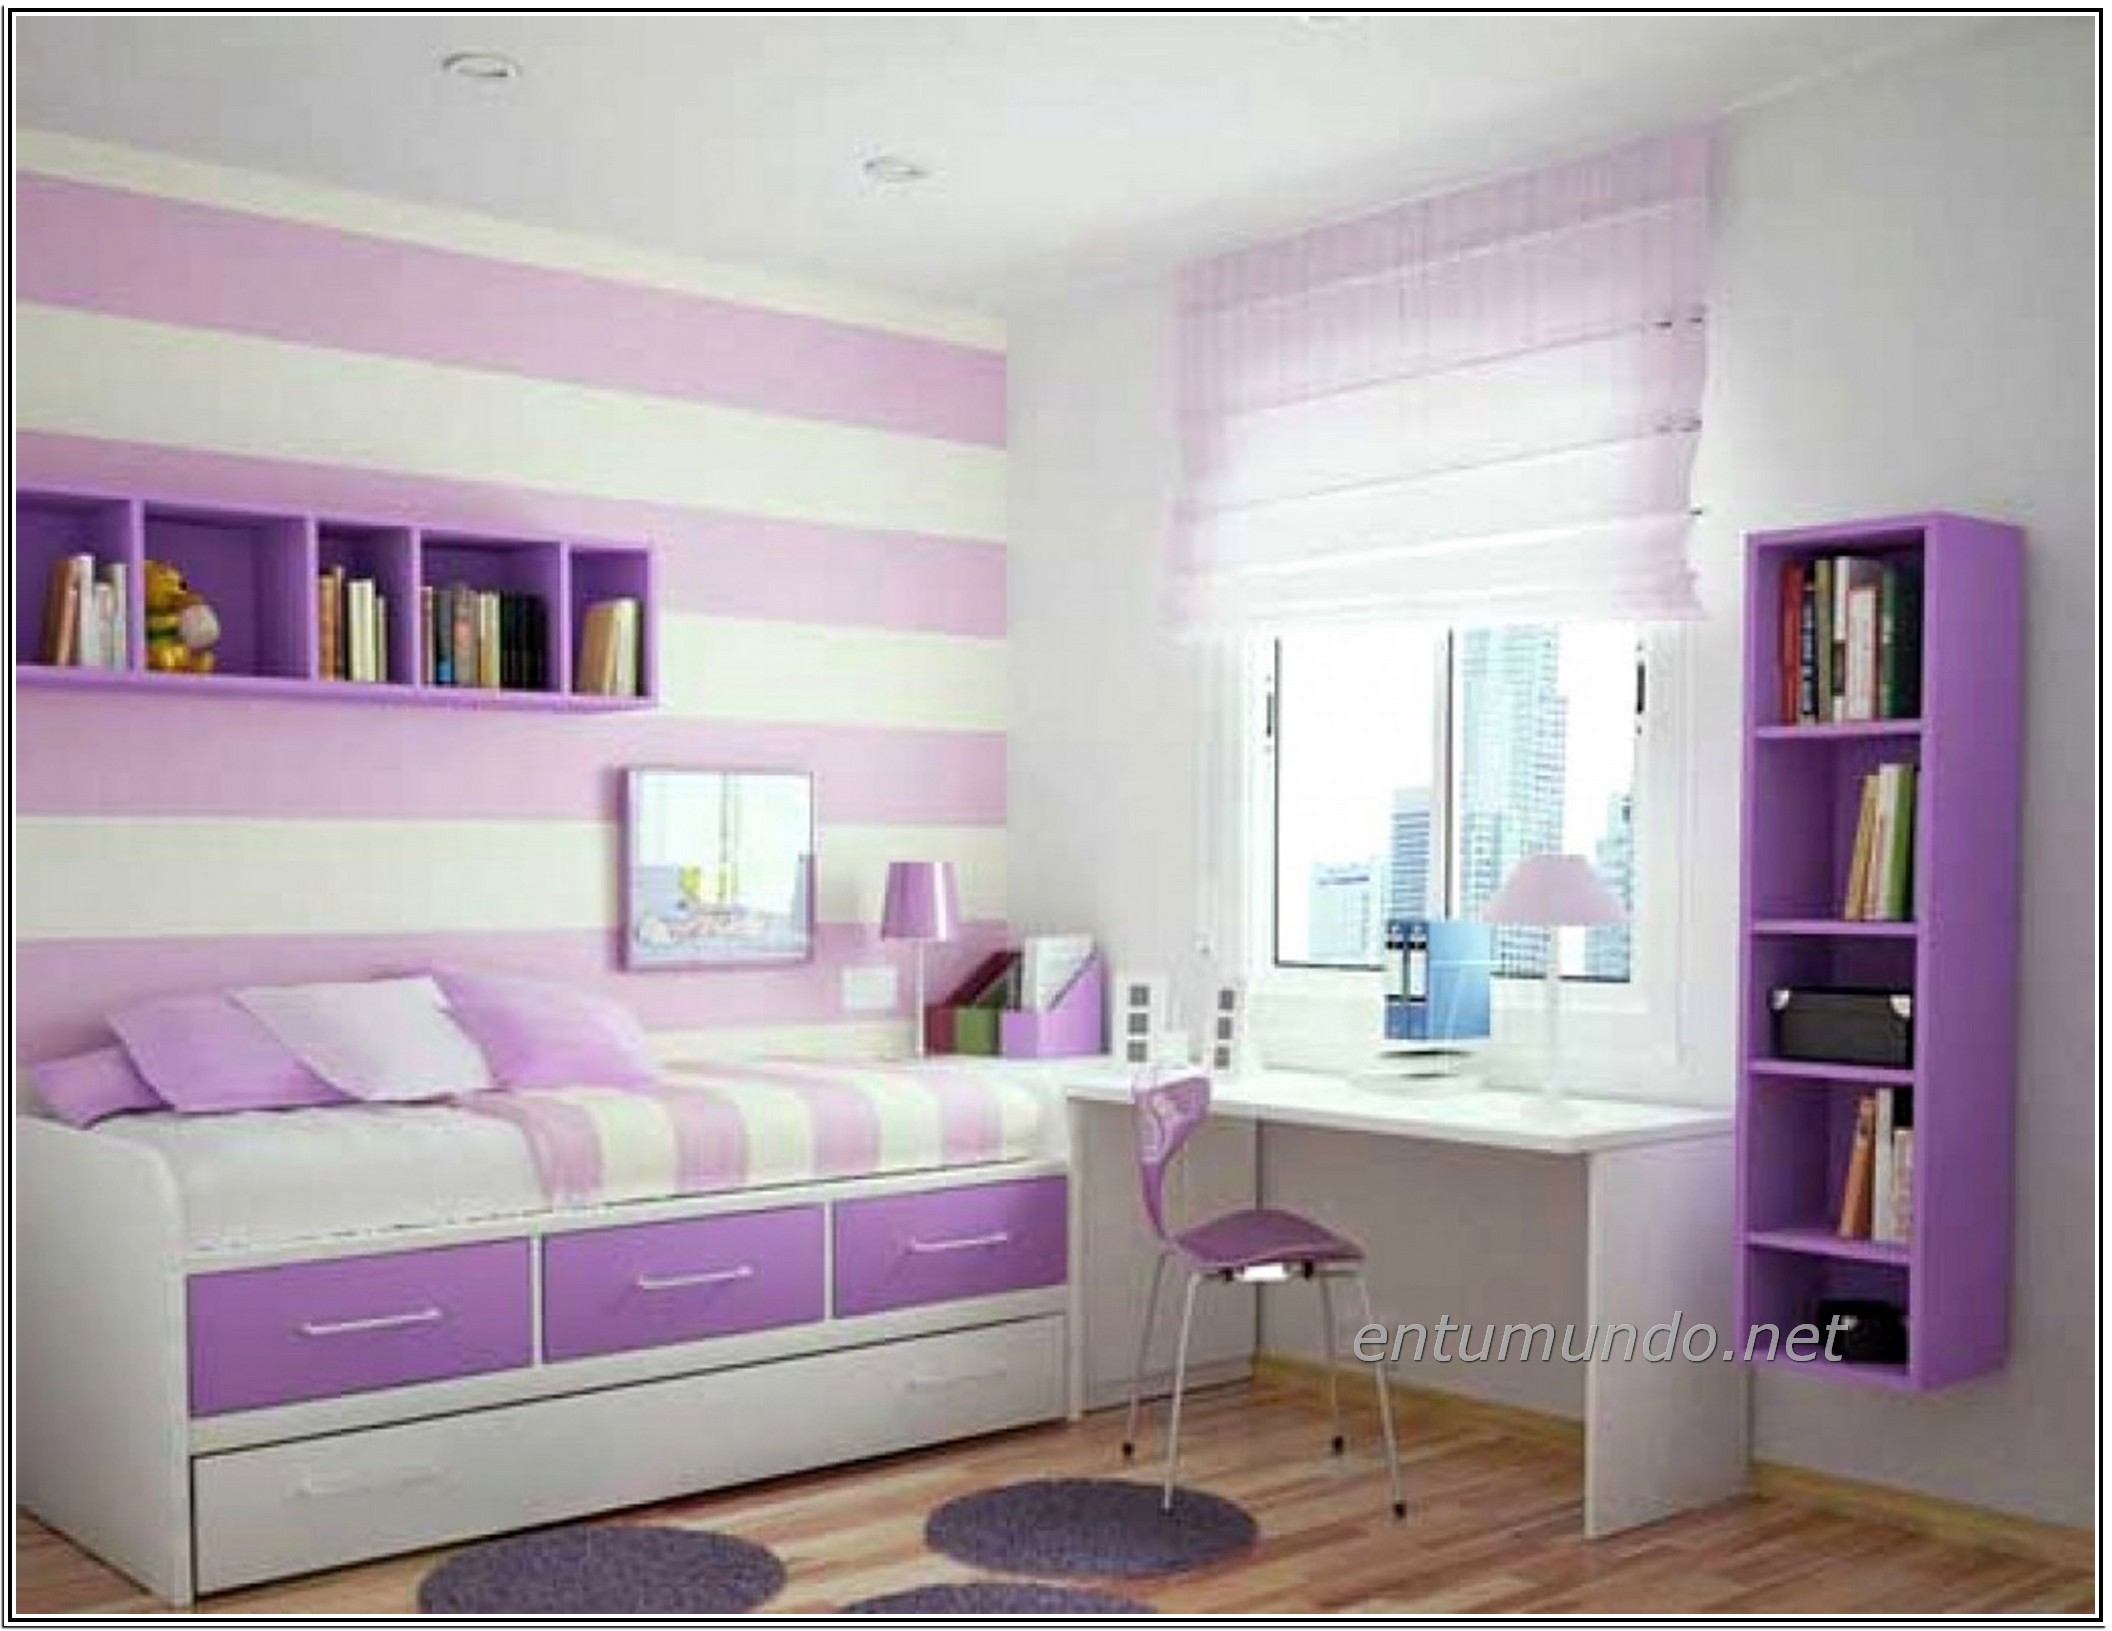 2112x1631 Teens Room Cool Design Ideas For Teenage Girls Foyer Wallpaper Bedroom Contemporary Medium Building Supplies